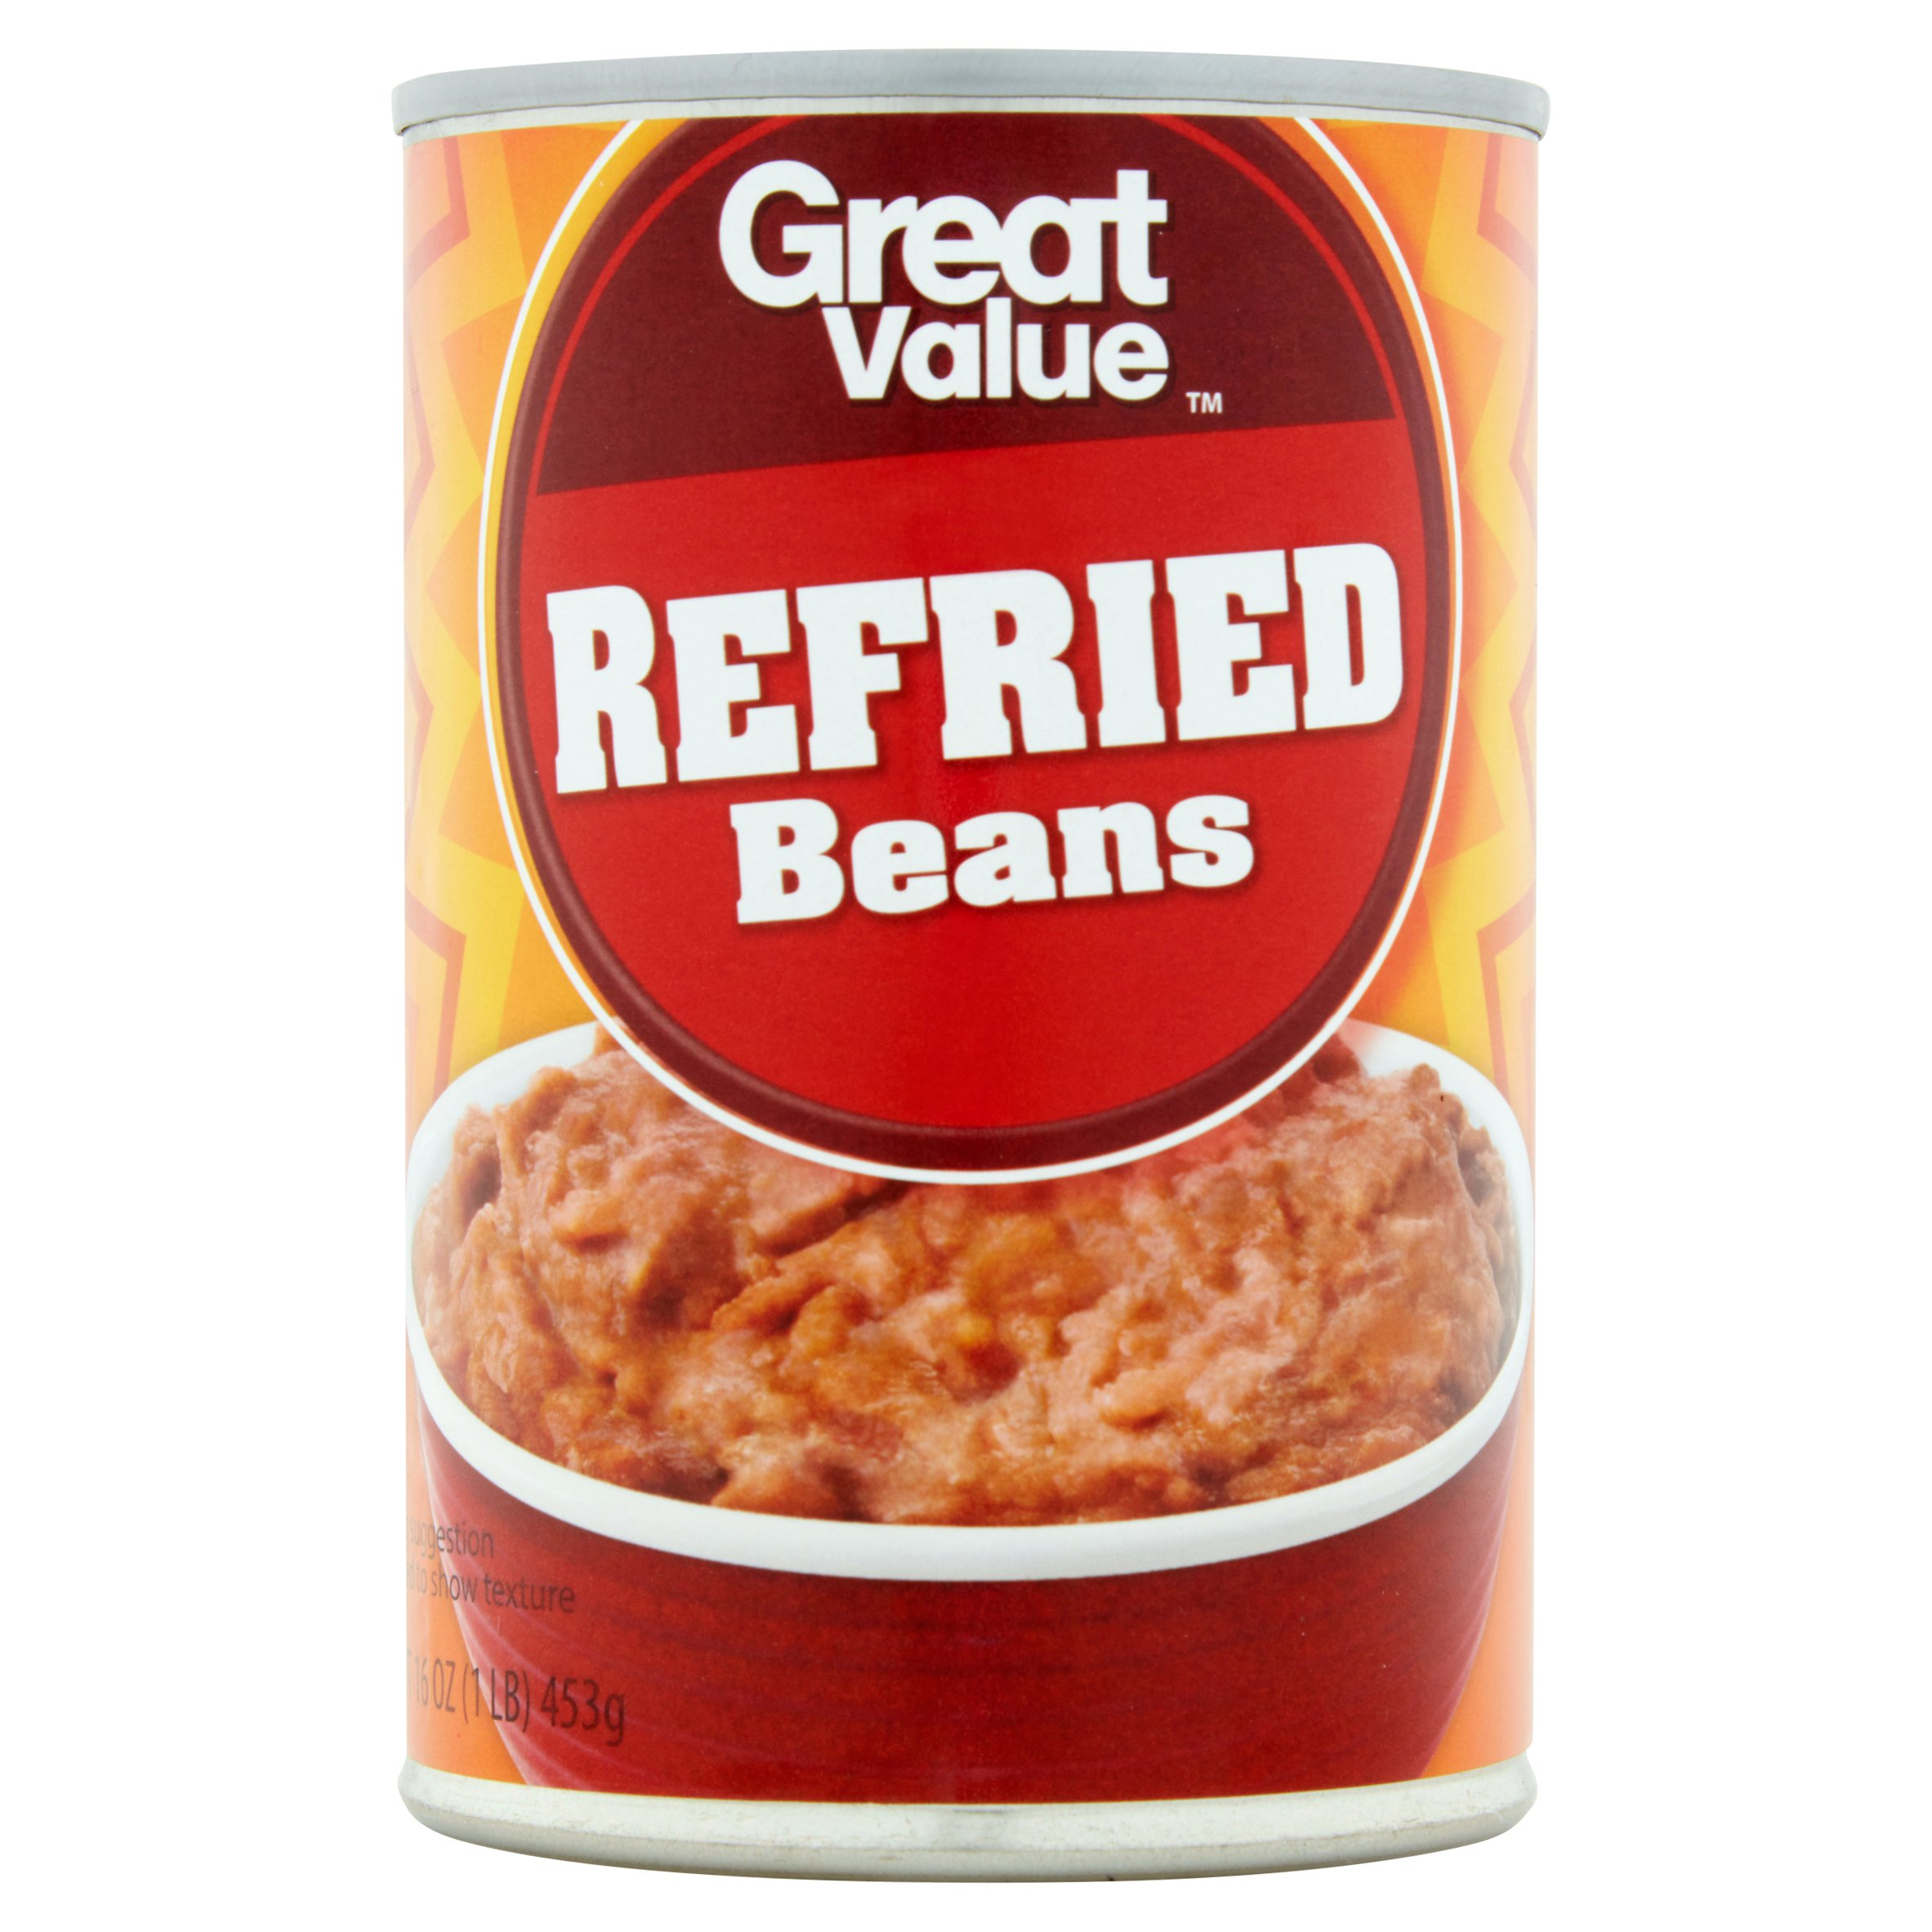 Great Value Traditional Refried Beans, 16 Oz